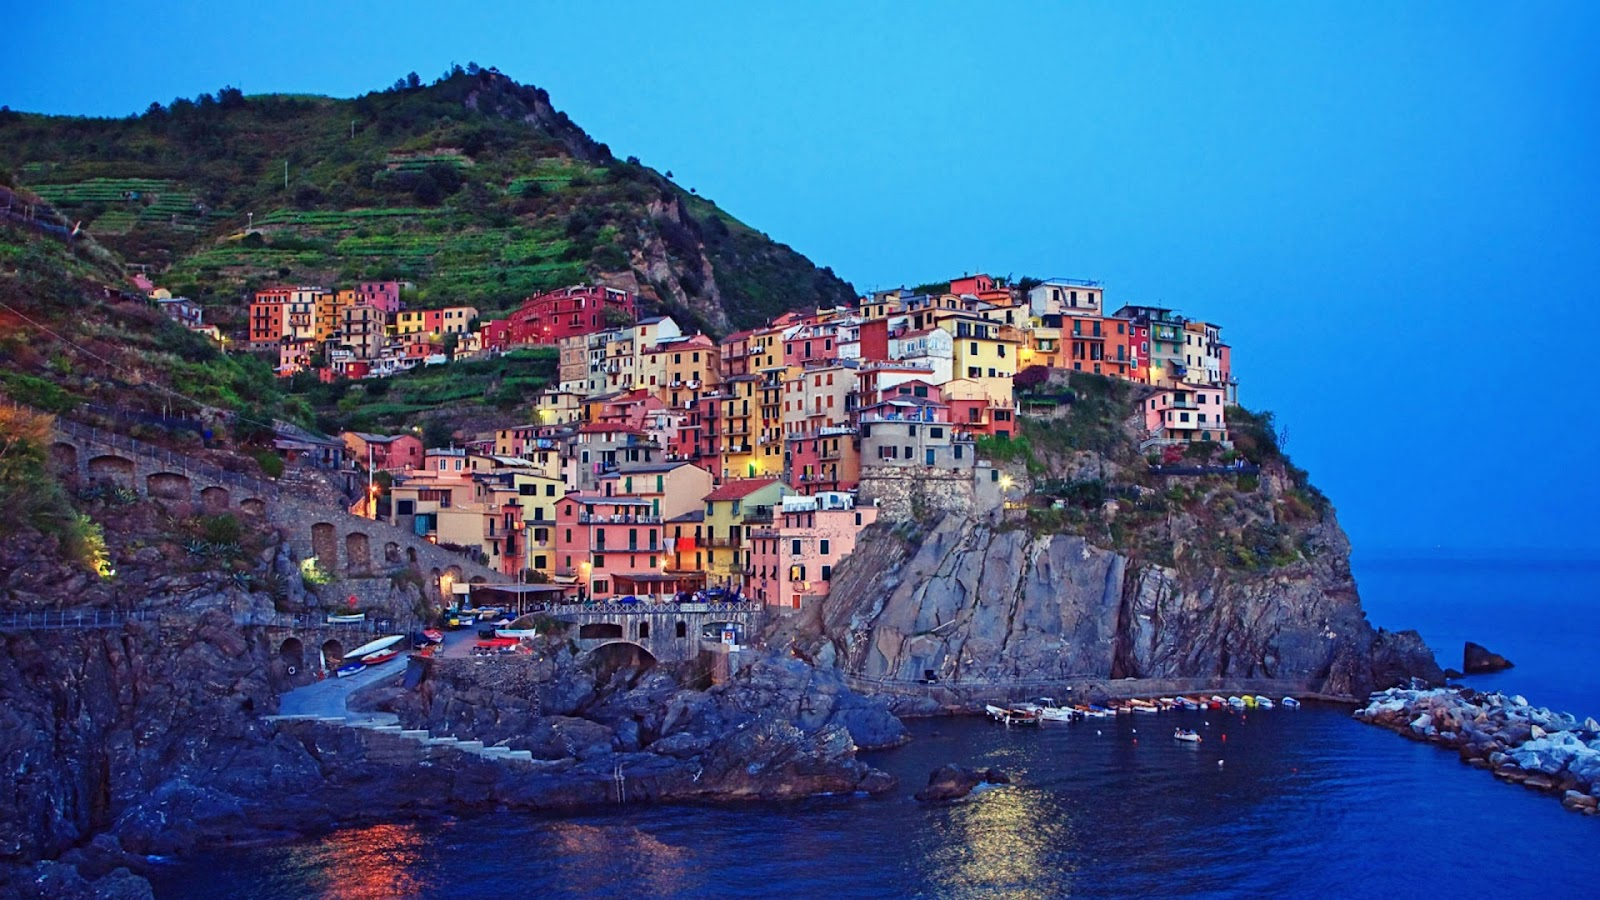 Amazing Italy Wallpaper